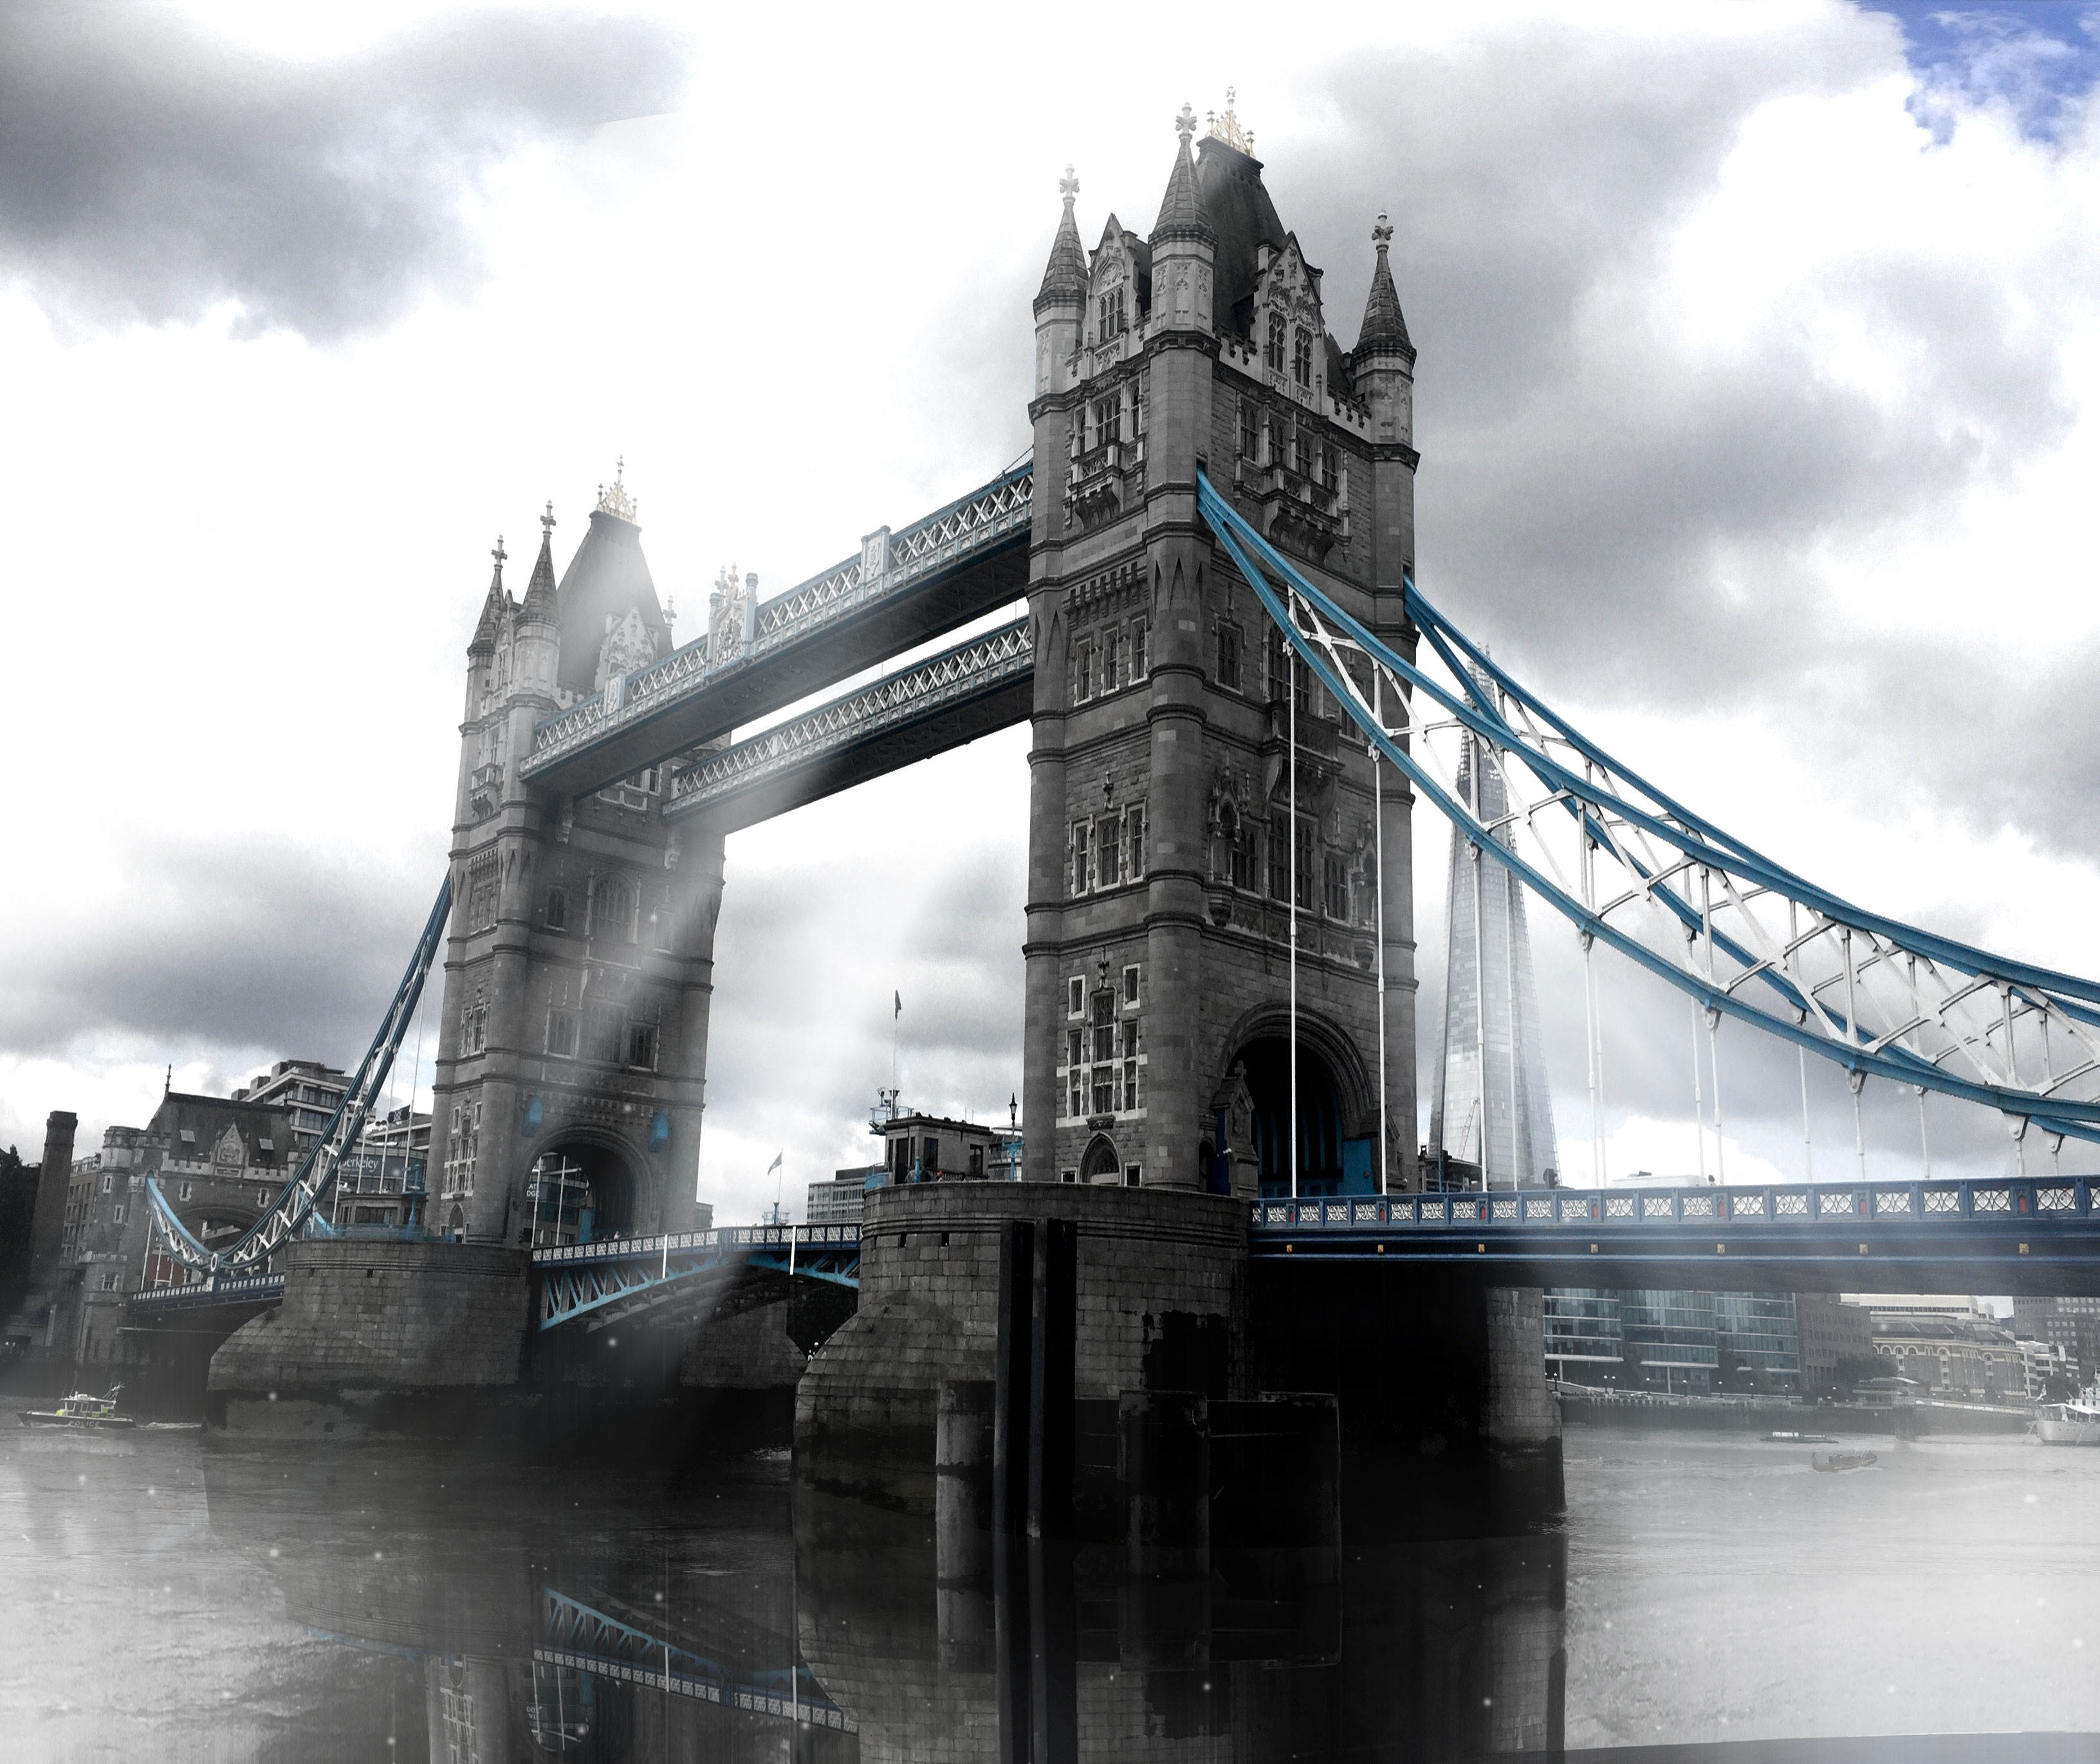 The London Tower Bridge of London, UK, almost black and white, with cloudy light rays